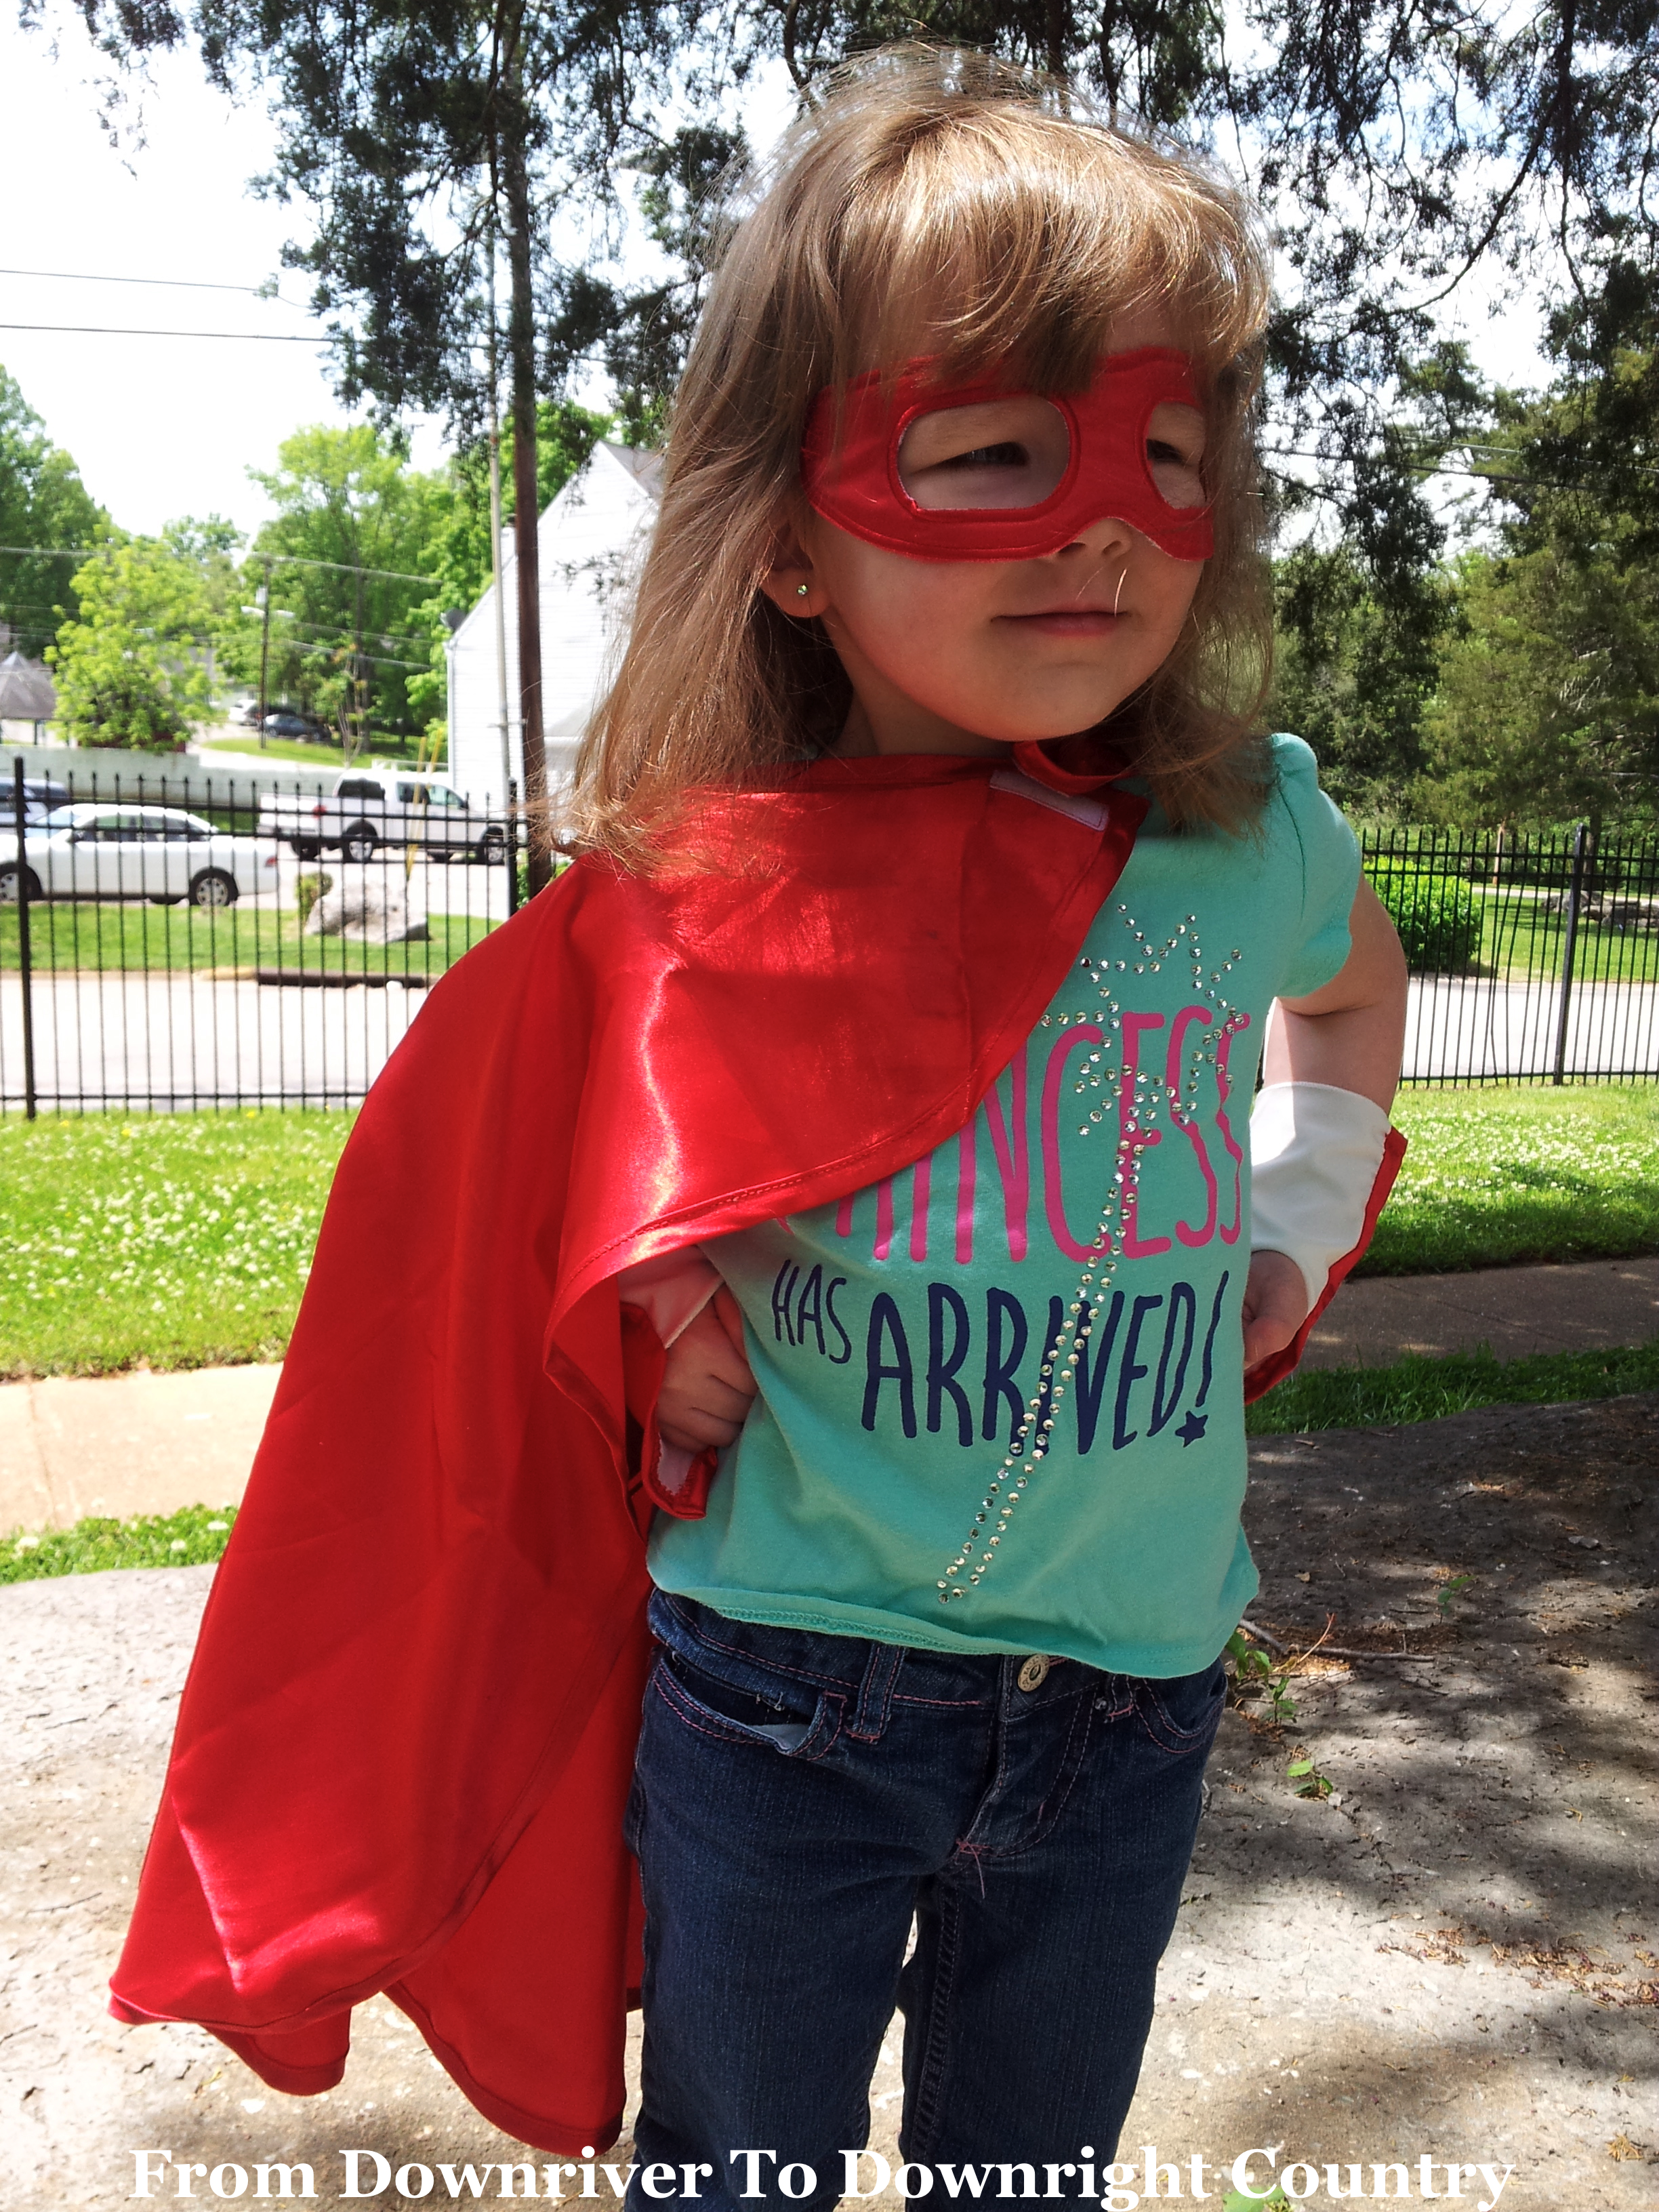 Everfan Superhero Cape Giveaway (US Only) Ends 05/20 | From